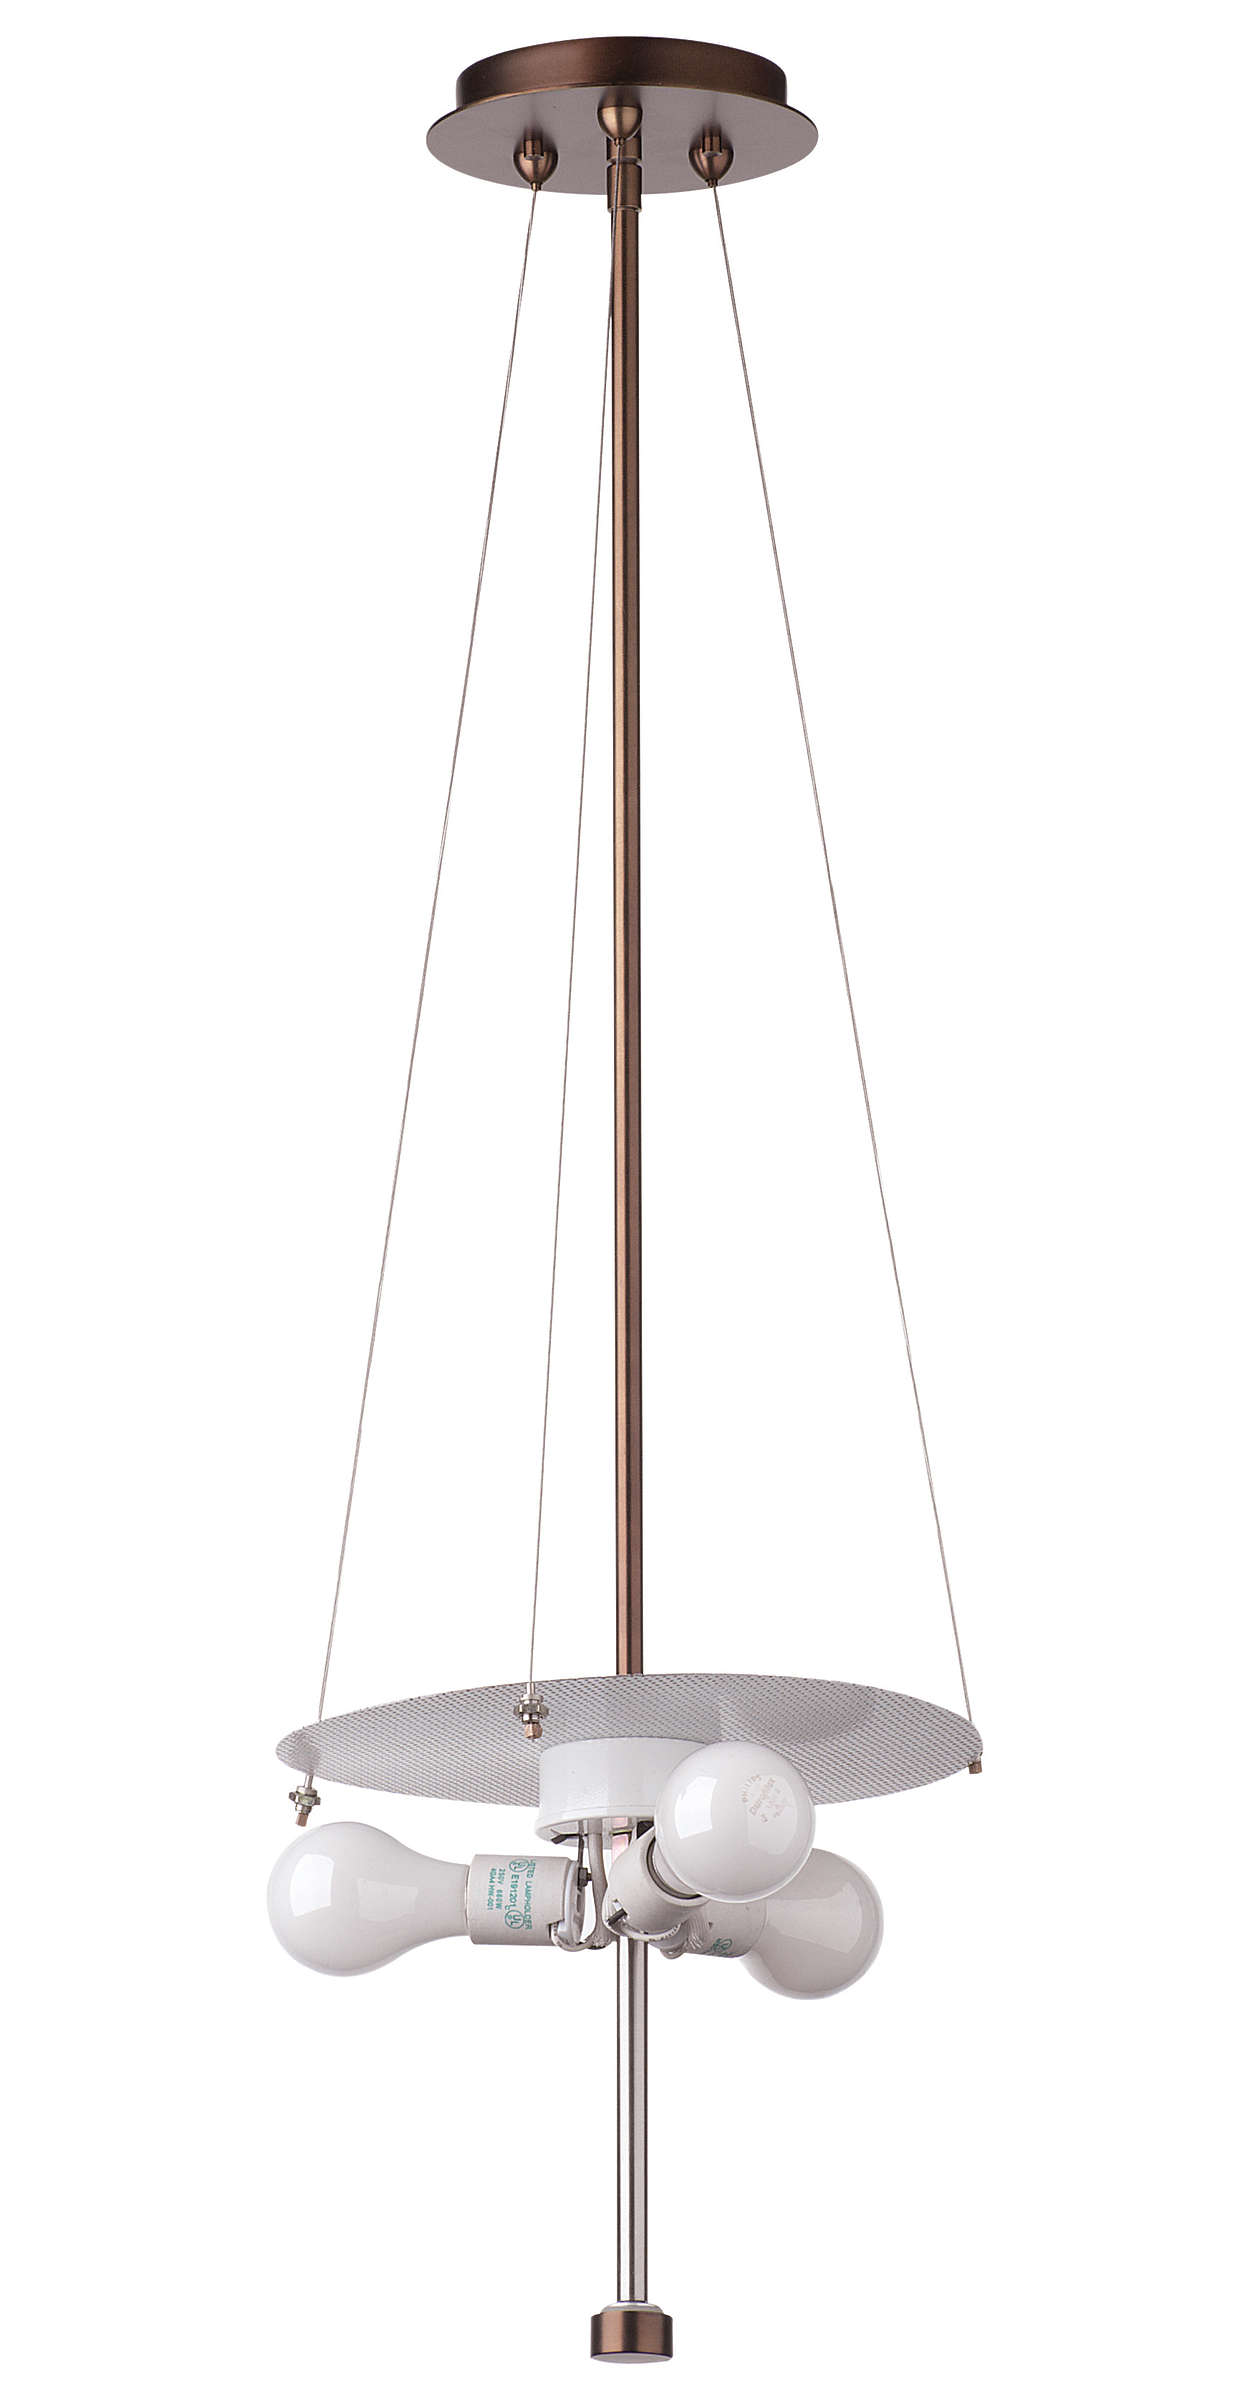 Taylor 3-light Pendant in Merlot Bronze finish